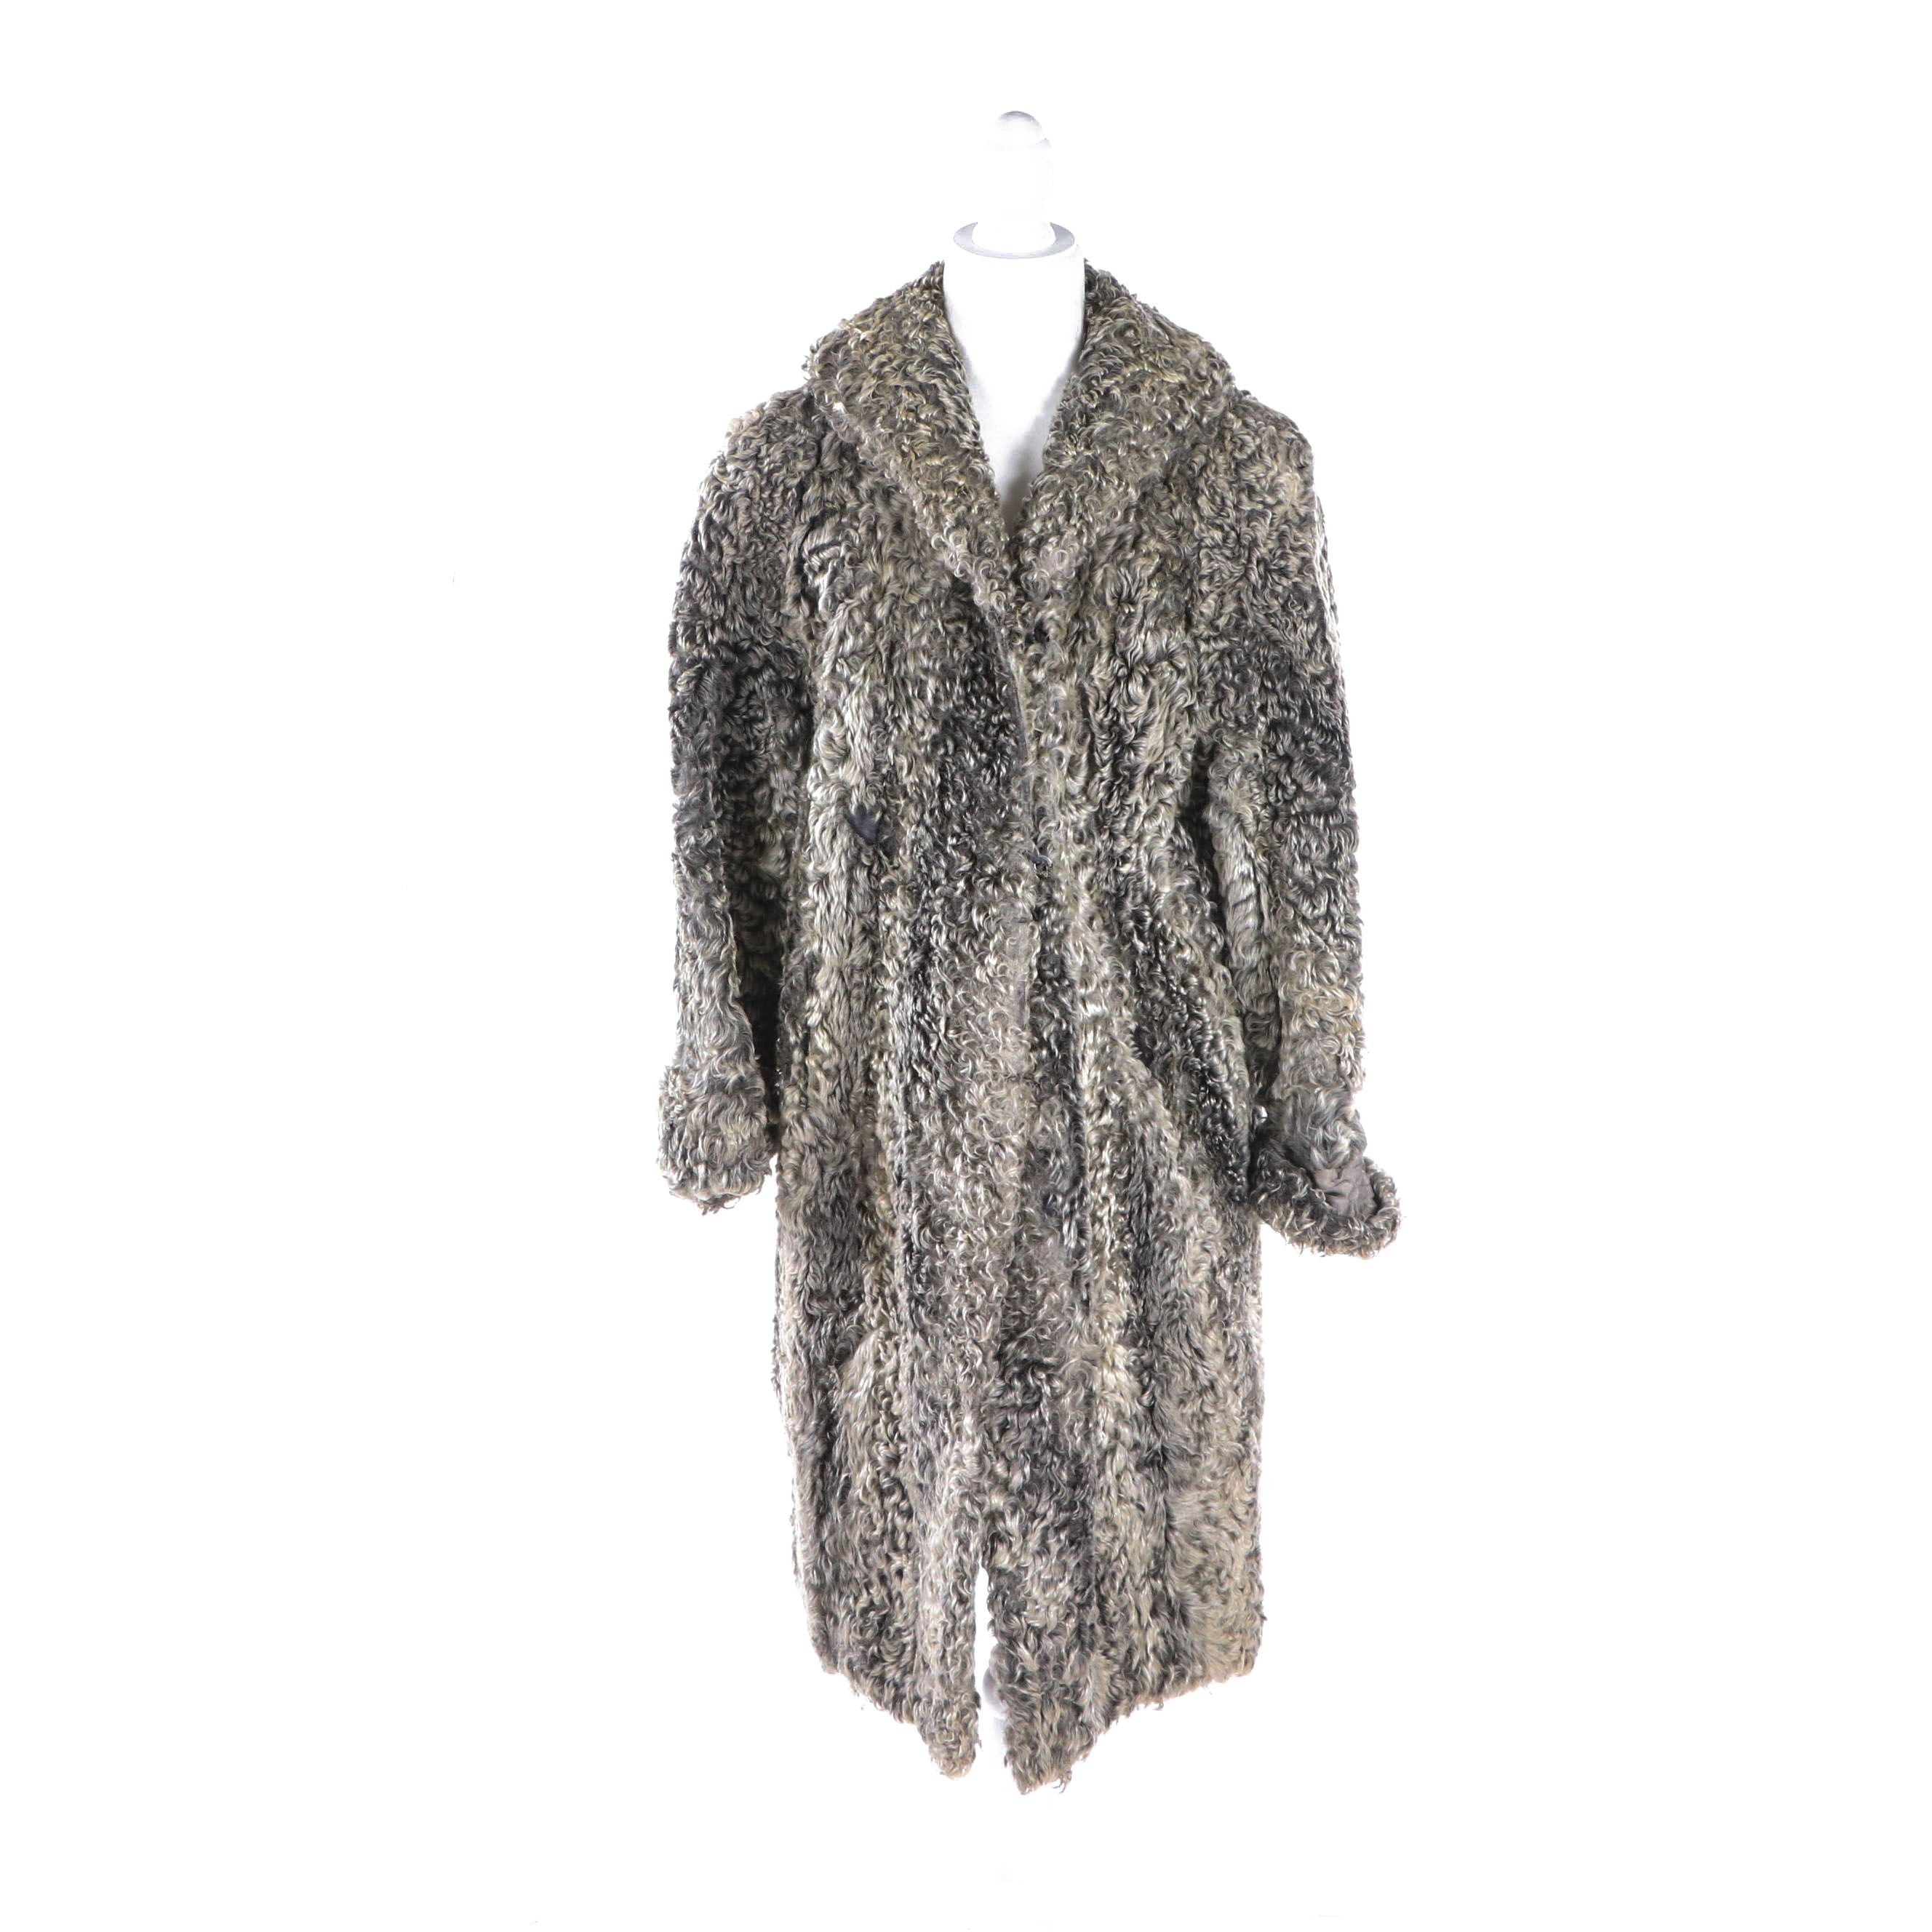 Women's Furs by Freedman Grey Persian Lamb Fur Coat, Vintage